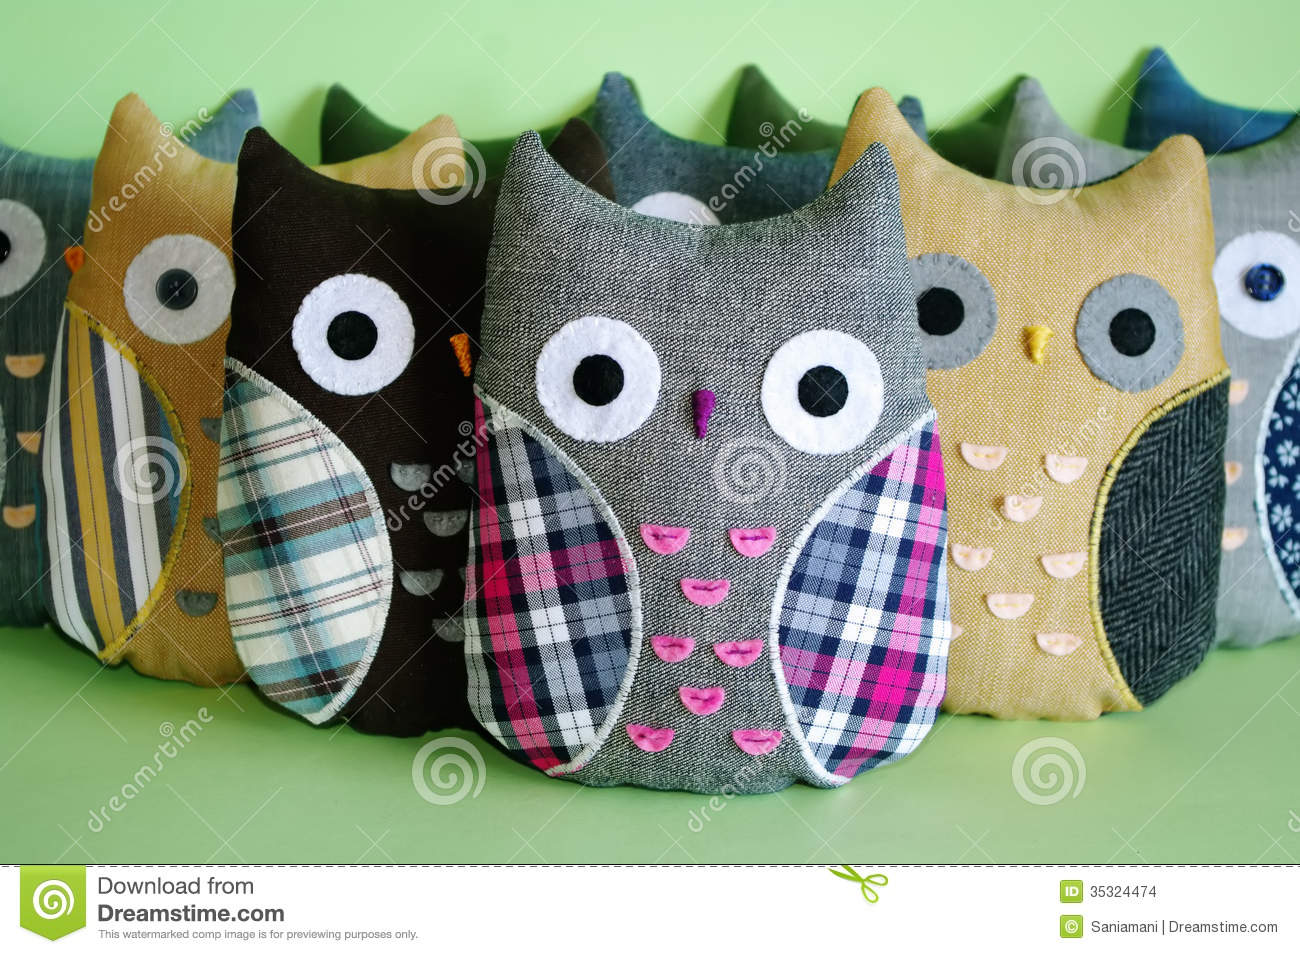 Handmade Owl Toys Stock Images - Image: 35324474